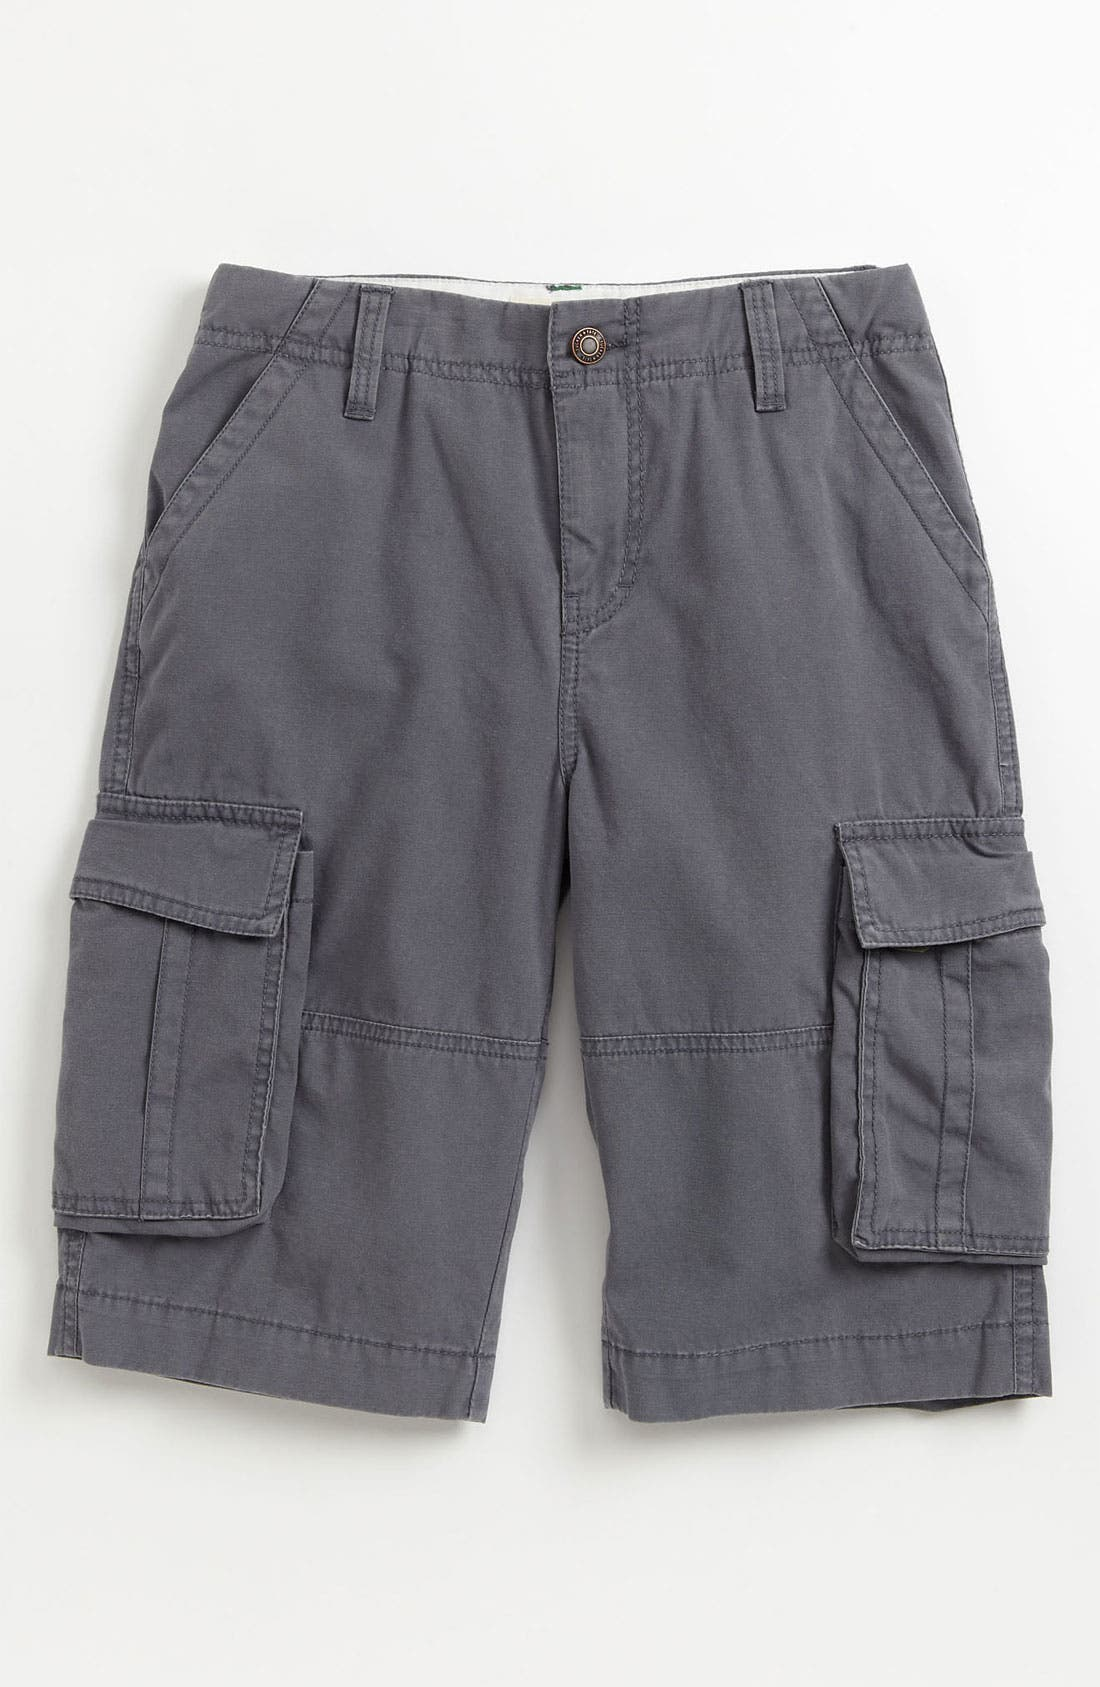 Alternate Image 1 Selected - Tucker + Tate Cargo Shorts (Toddler)